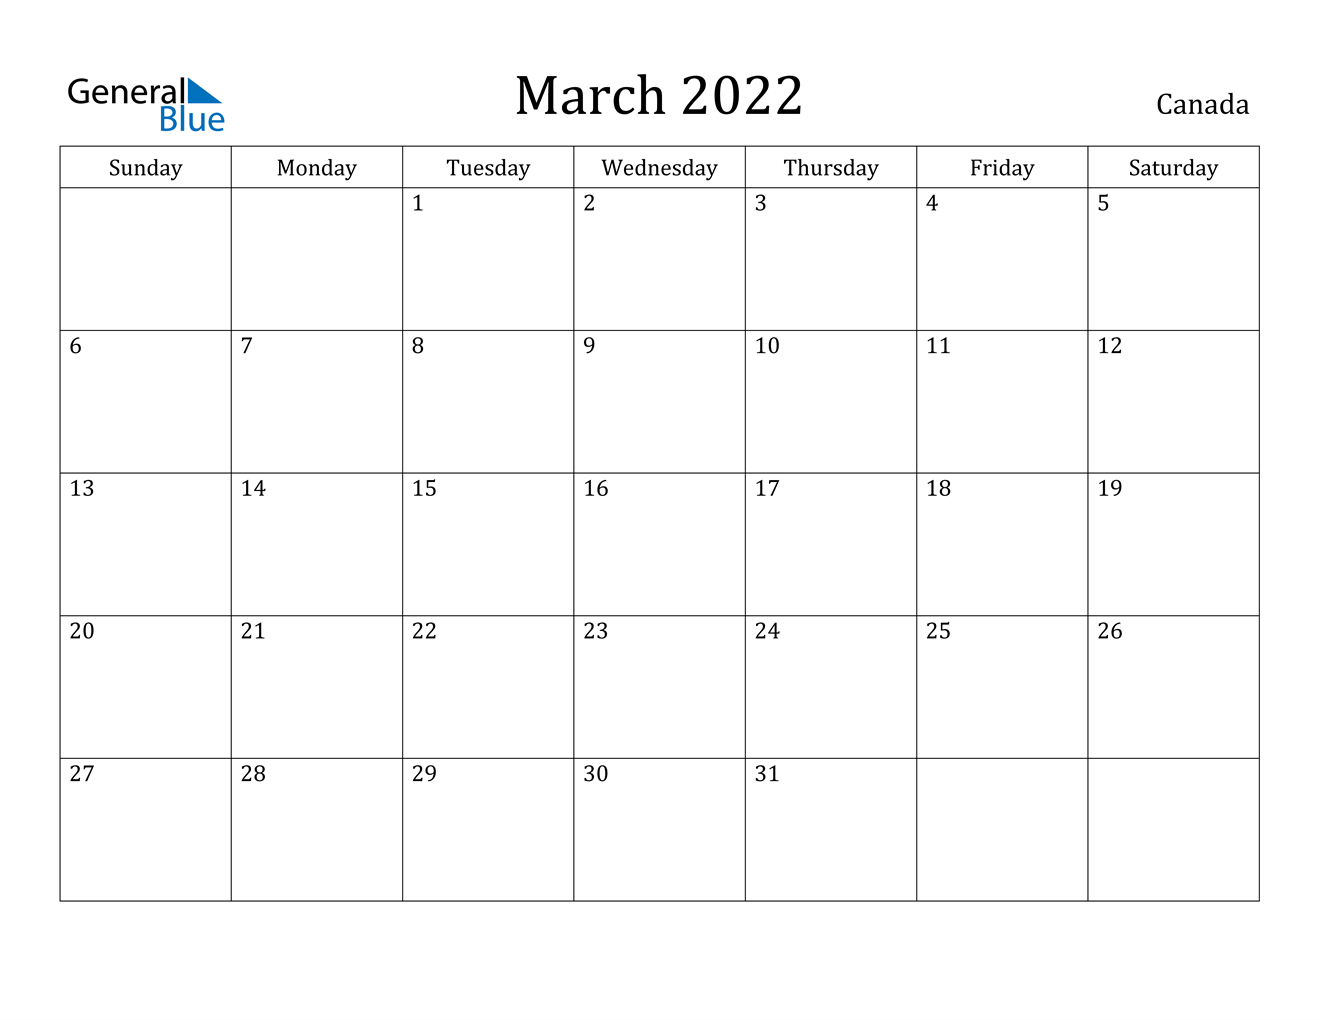 March 2022 Calendar - Canada Intended For Print Calendar January 2022 Fillable Lines